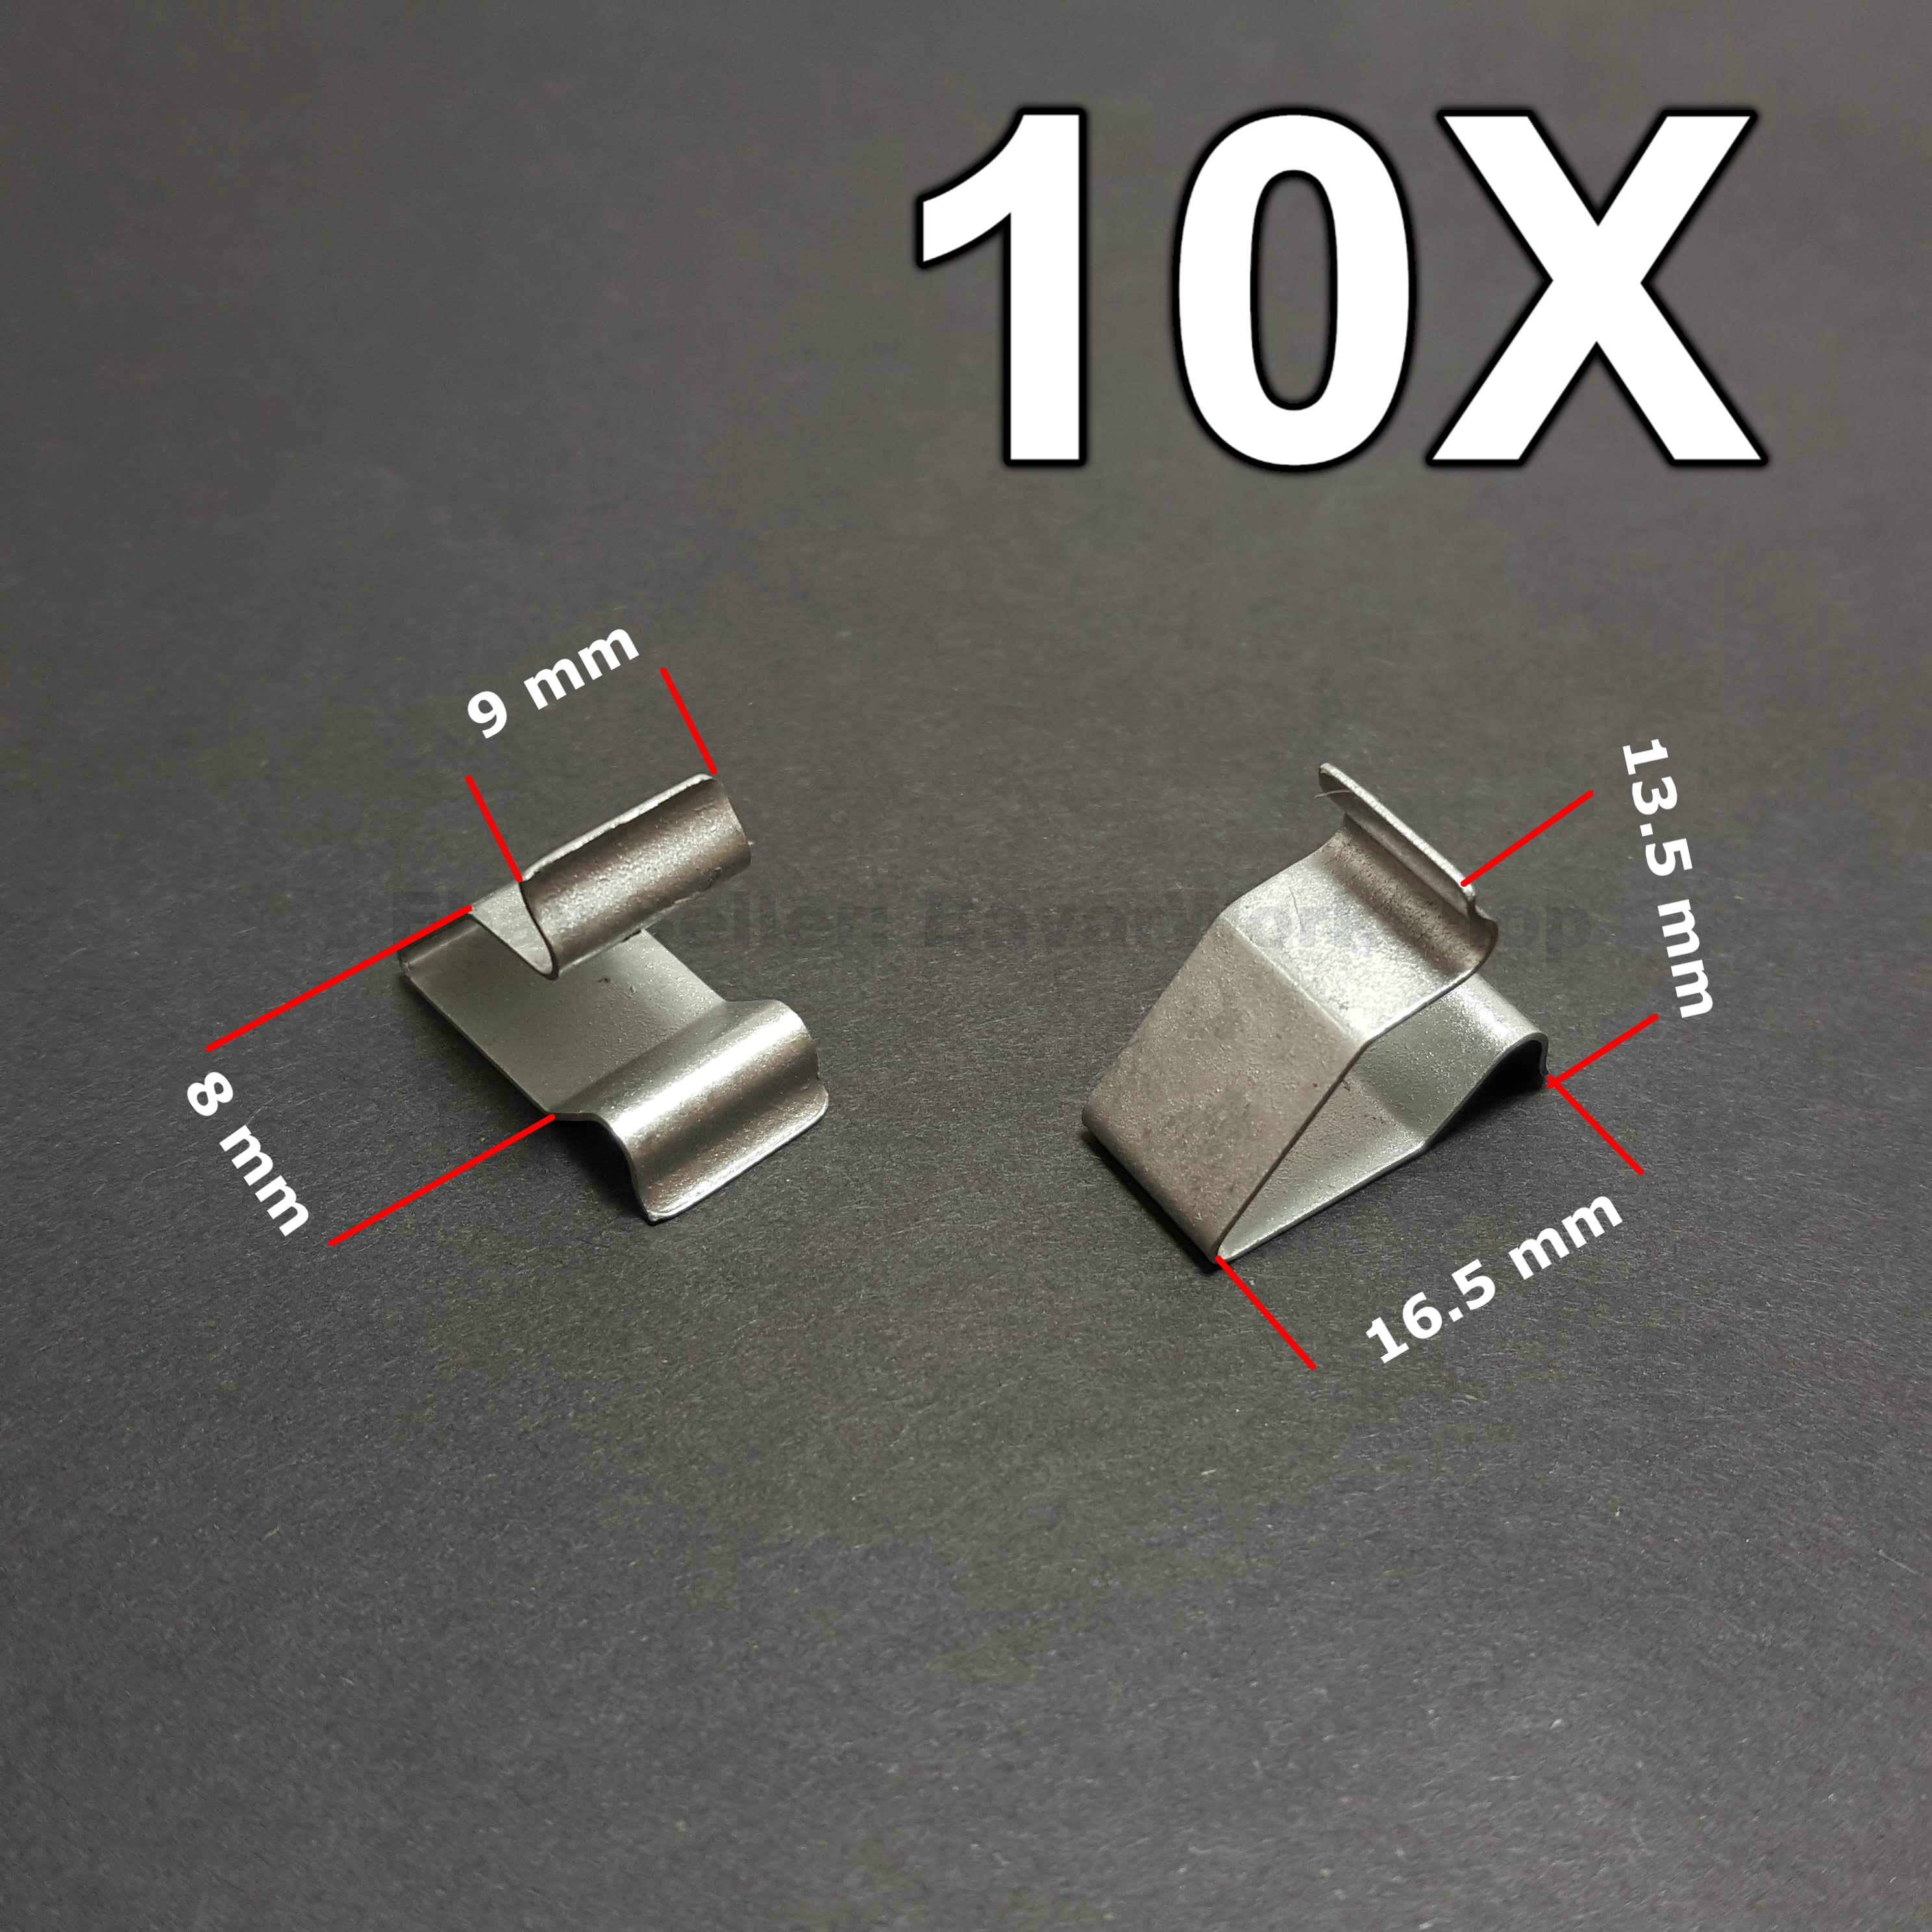 clips for VW Seat Skoda 10X Metal Mount Brackets Clamps Audi